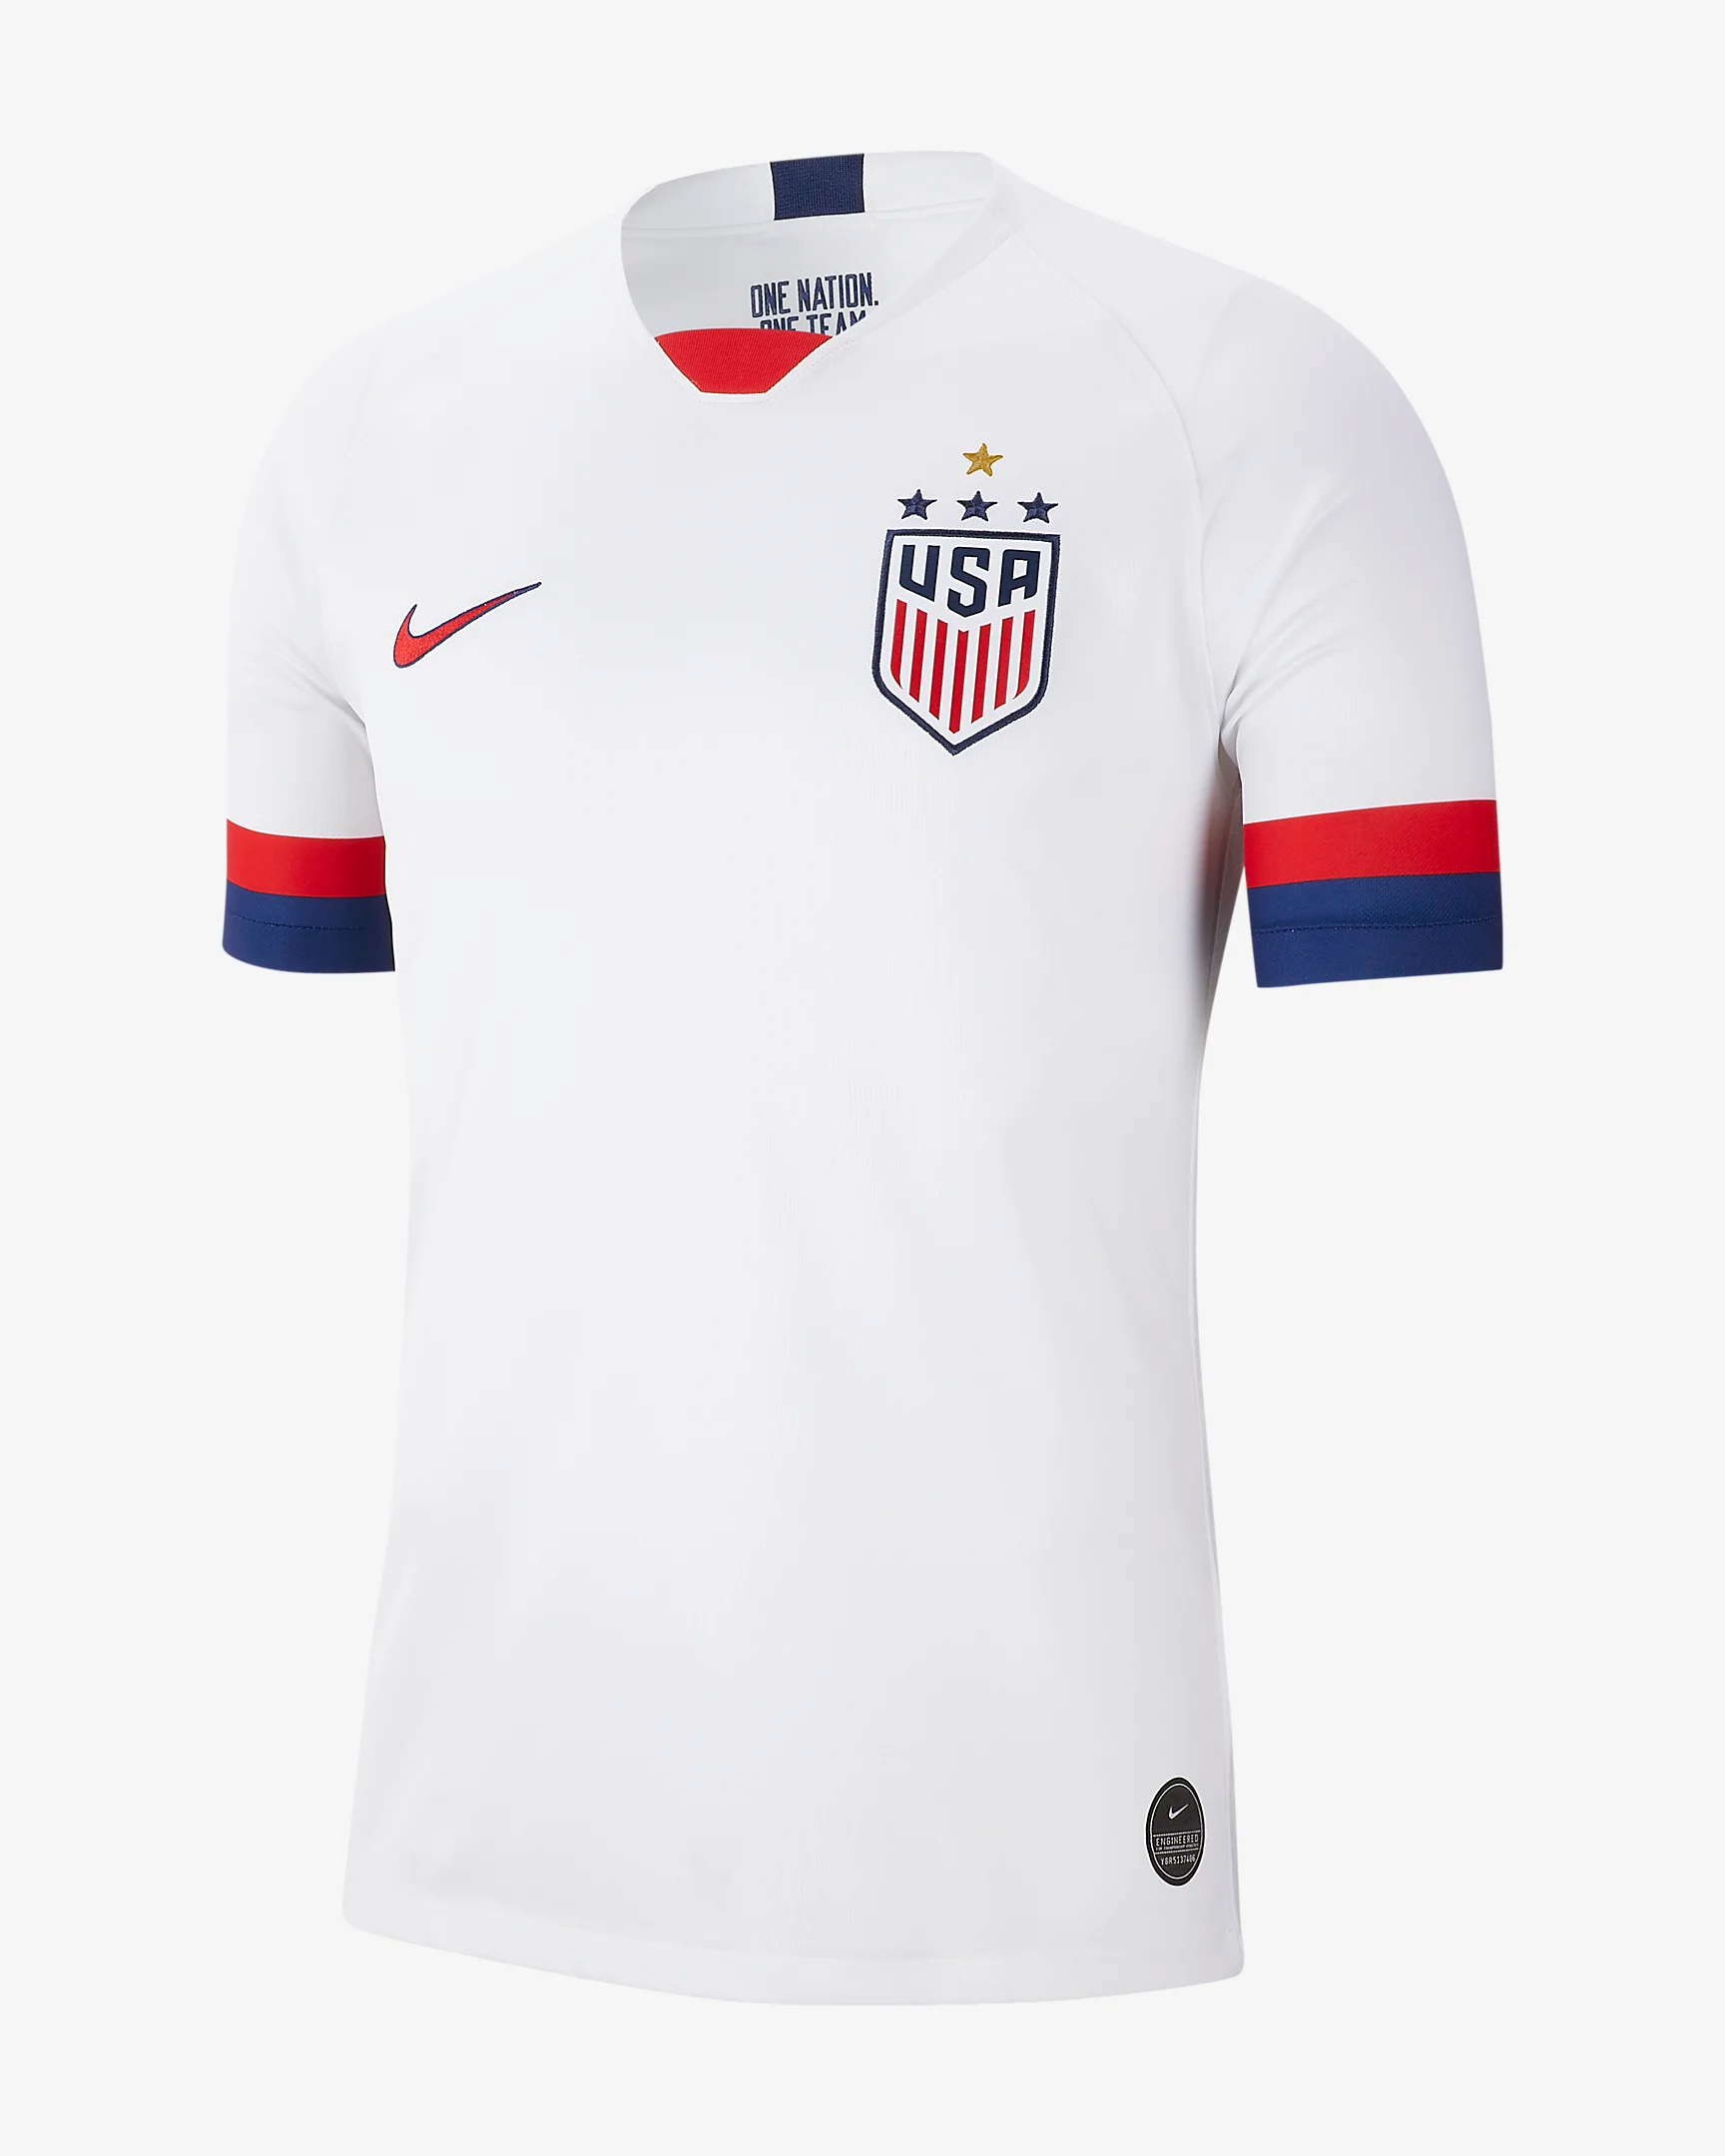 us-2019-stadium-home-mens-soccer-jersey-b6tF22.png